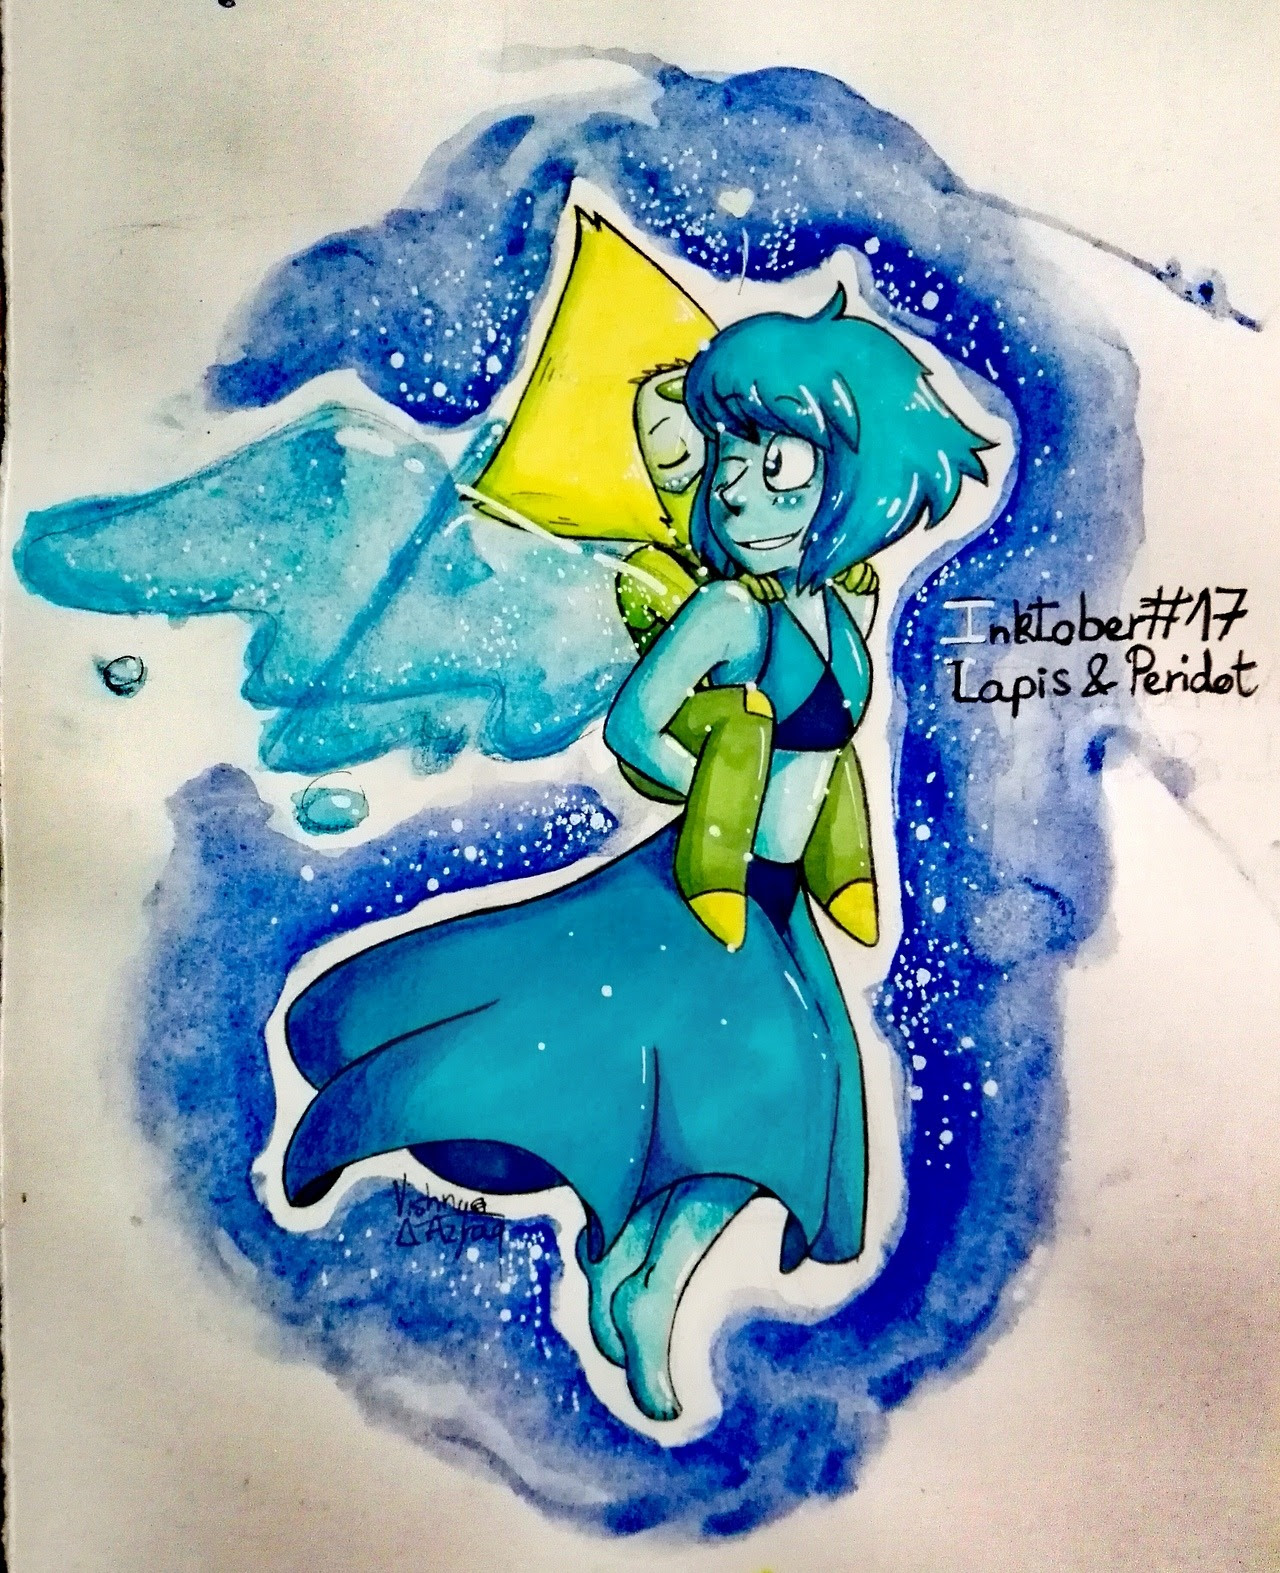 The 17th drawing, with our beloved gems Lapis and Peridot 8D ! Sunday was a good day for us Lapidot shippers so drawing them was pretty much obvious after that hehehehehe Expect more ships from me...